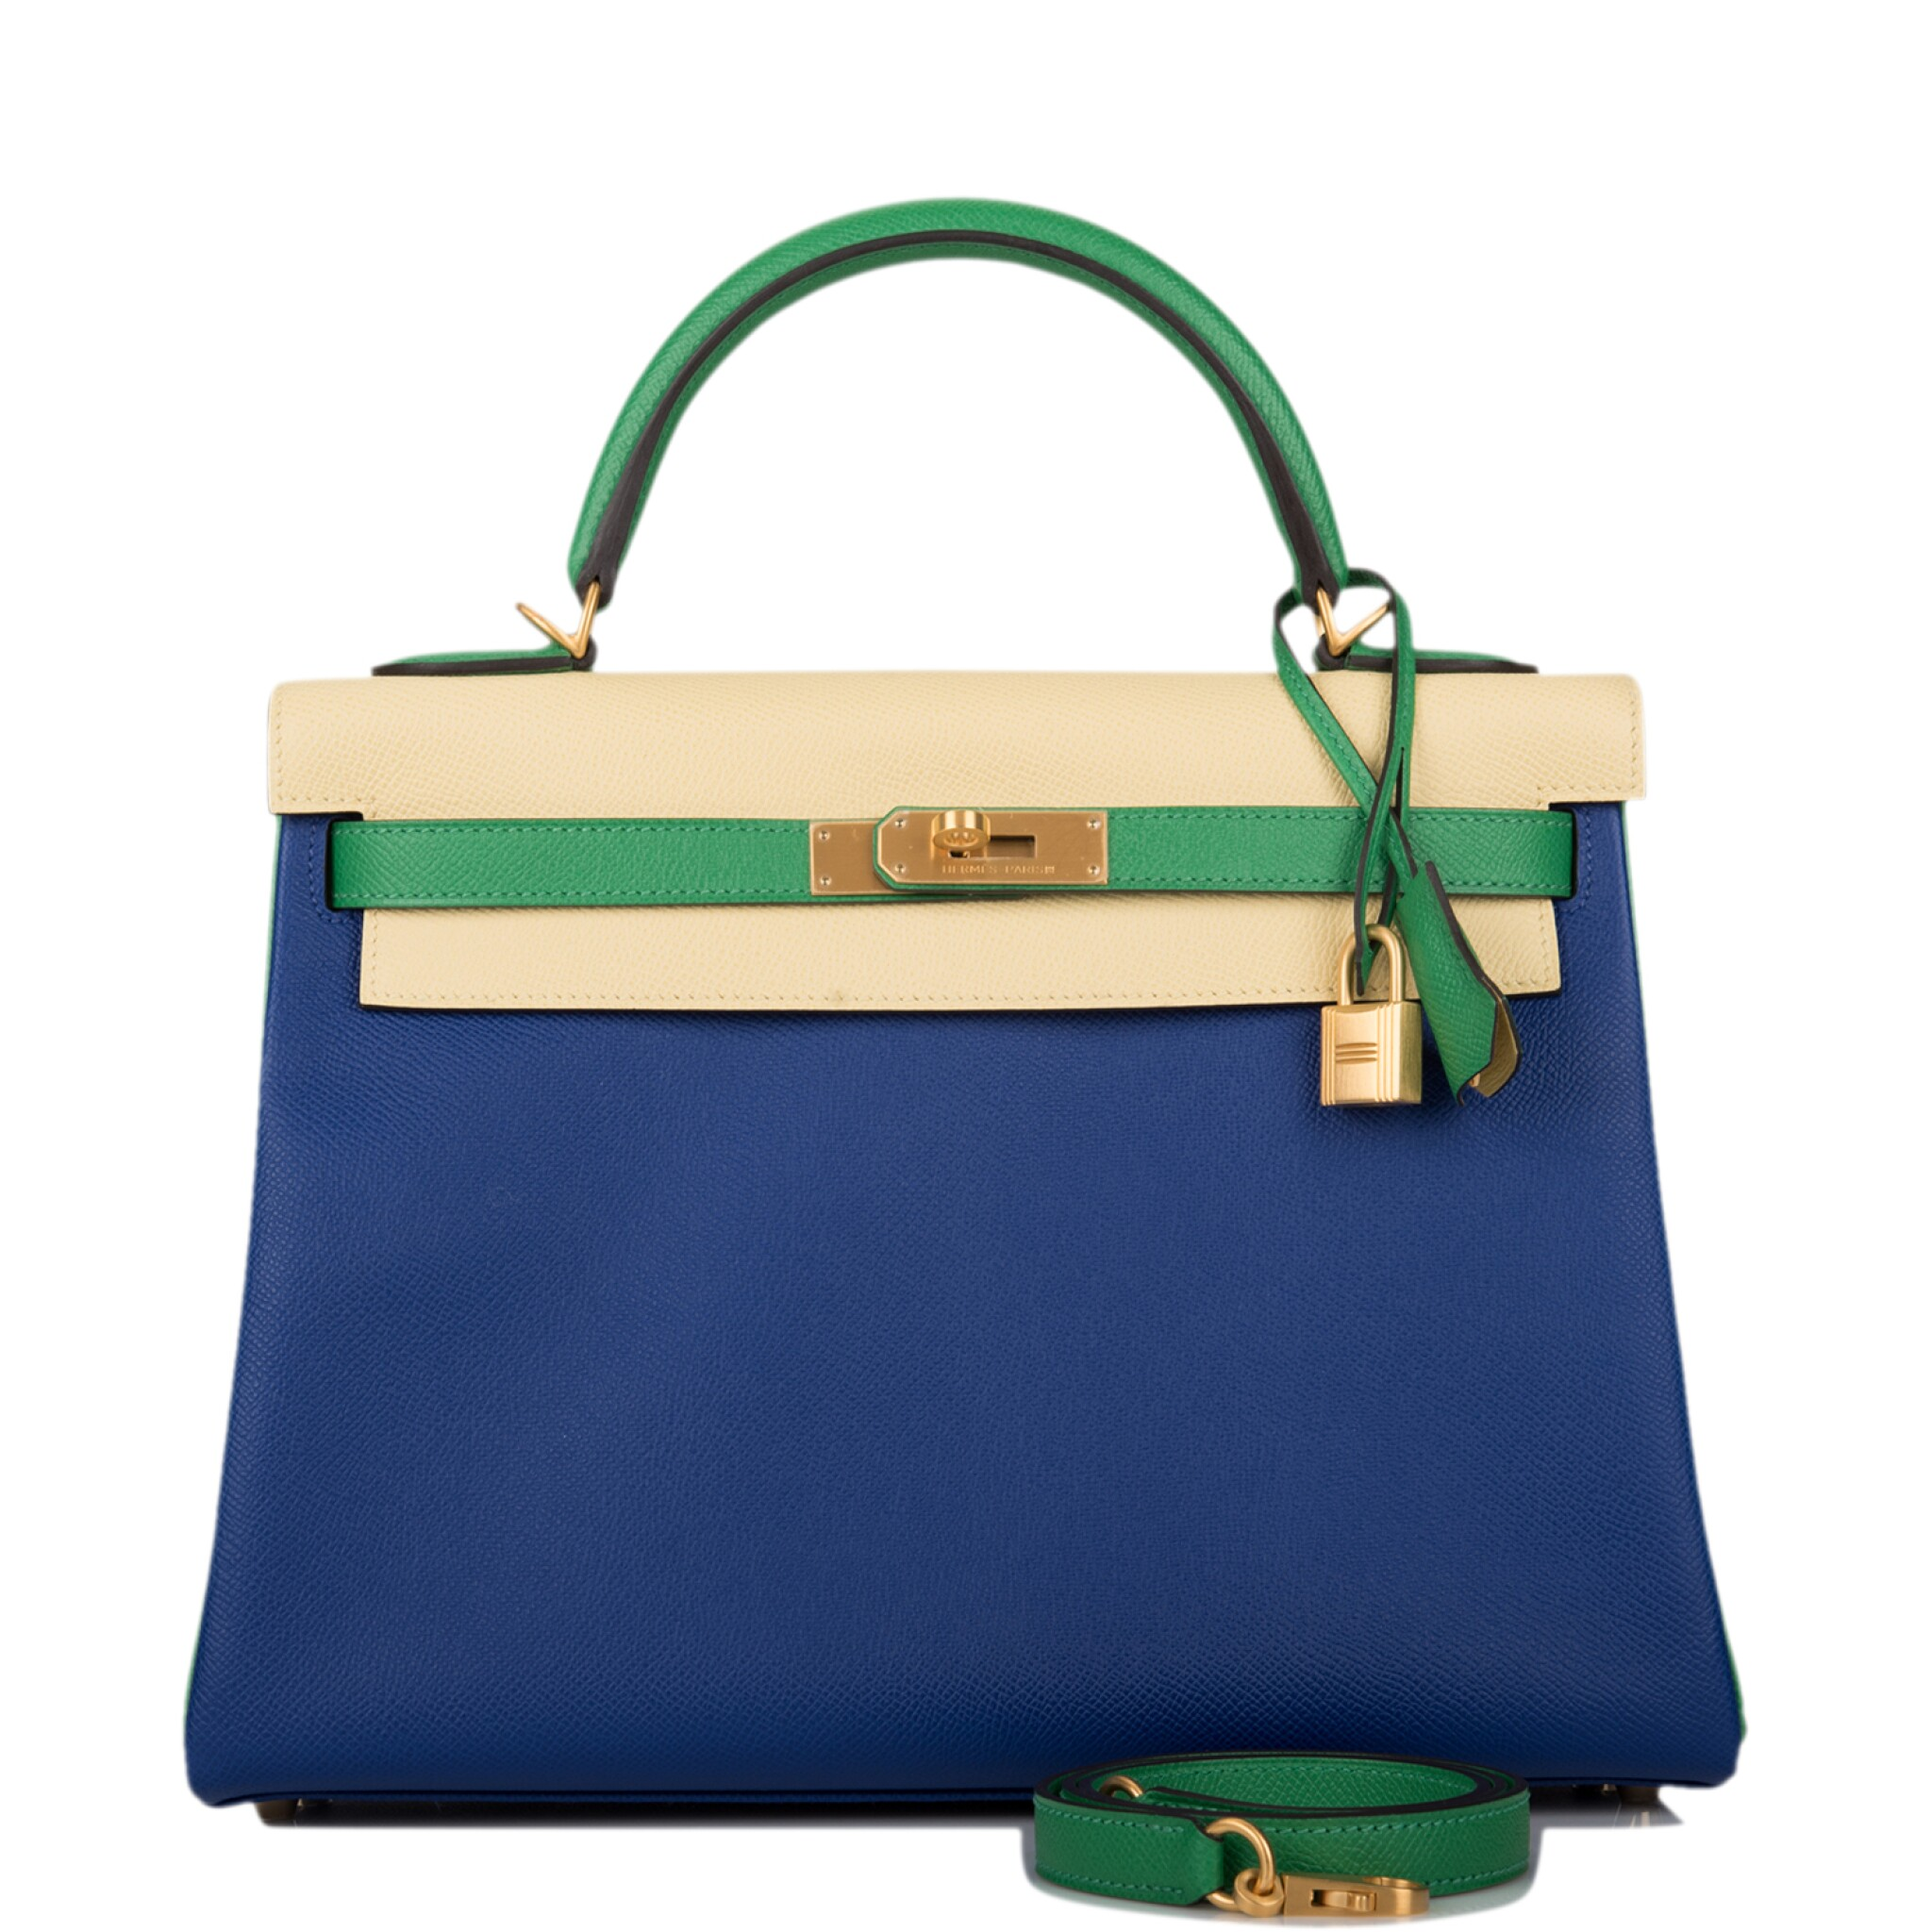 View full screen - View 1 of Lot 13. HERMÈS | HORSESHOE STAMP (HSS) TRI-COLOR BLEU ELECTRIC, BAMBOO AND JAUNE POUSSIN RETOURNE KELLY 32CM OF EPSOM LEATHER WITH BRUSHED GOLD HARDWARE.